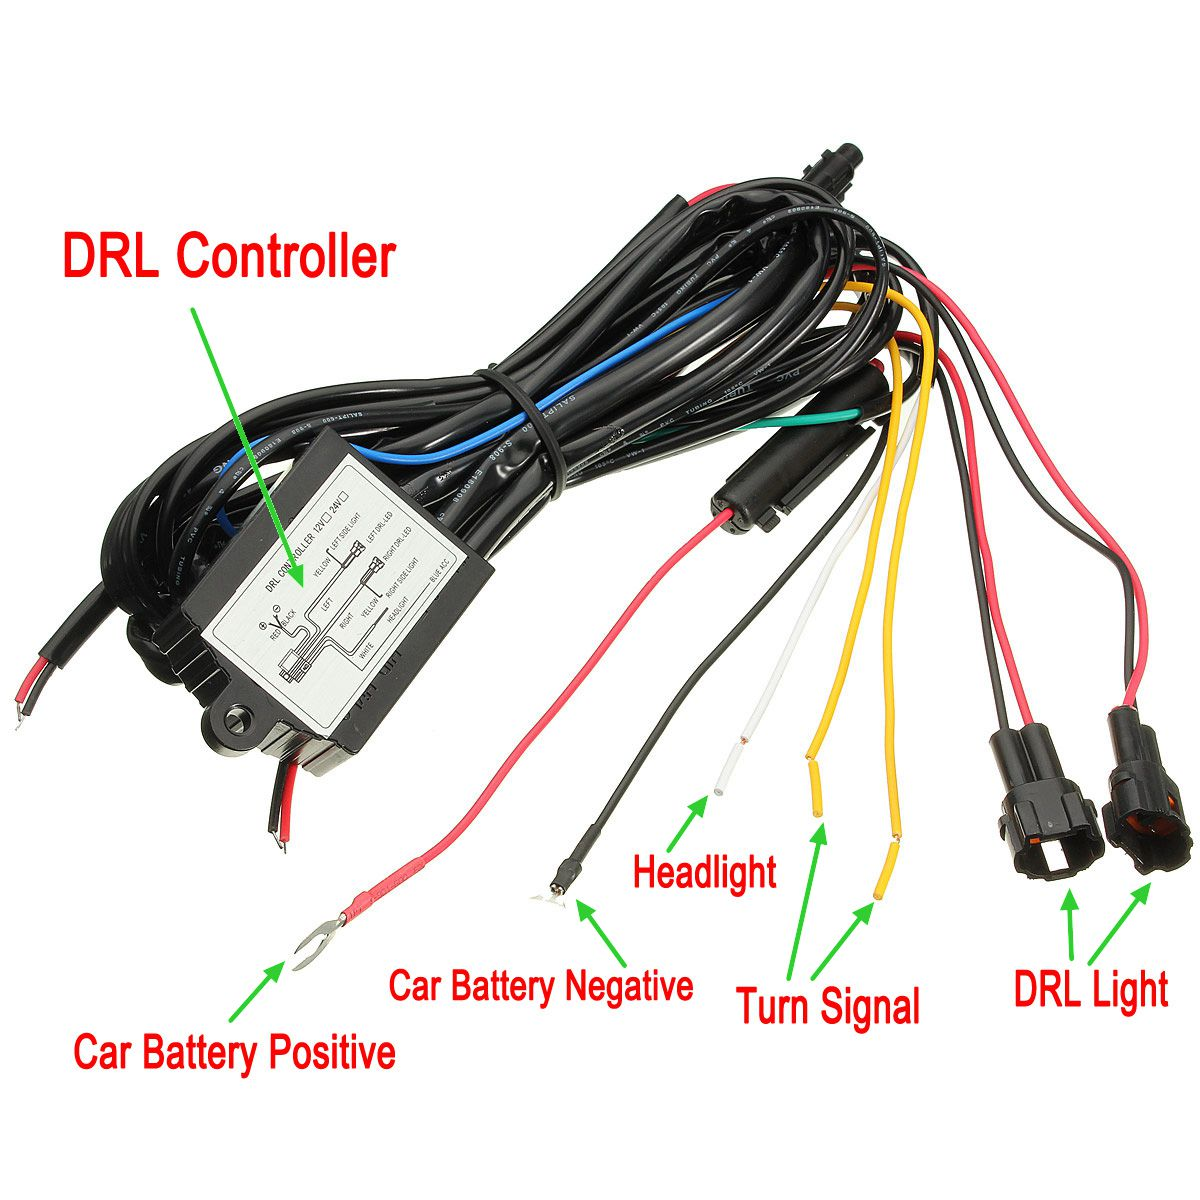 honda accord relay reviews online shopping honda accord relay drl daytime running light dimmer dimming relay control switch harness car line 12v on off